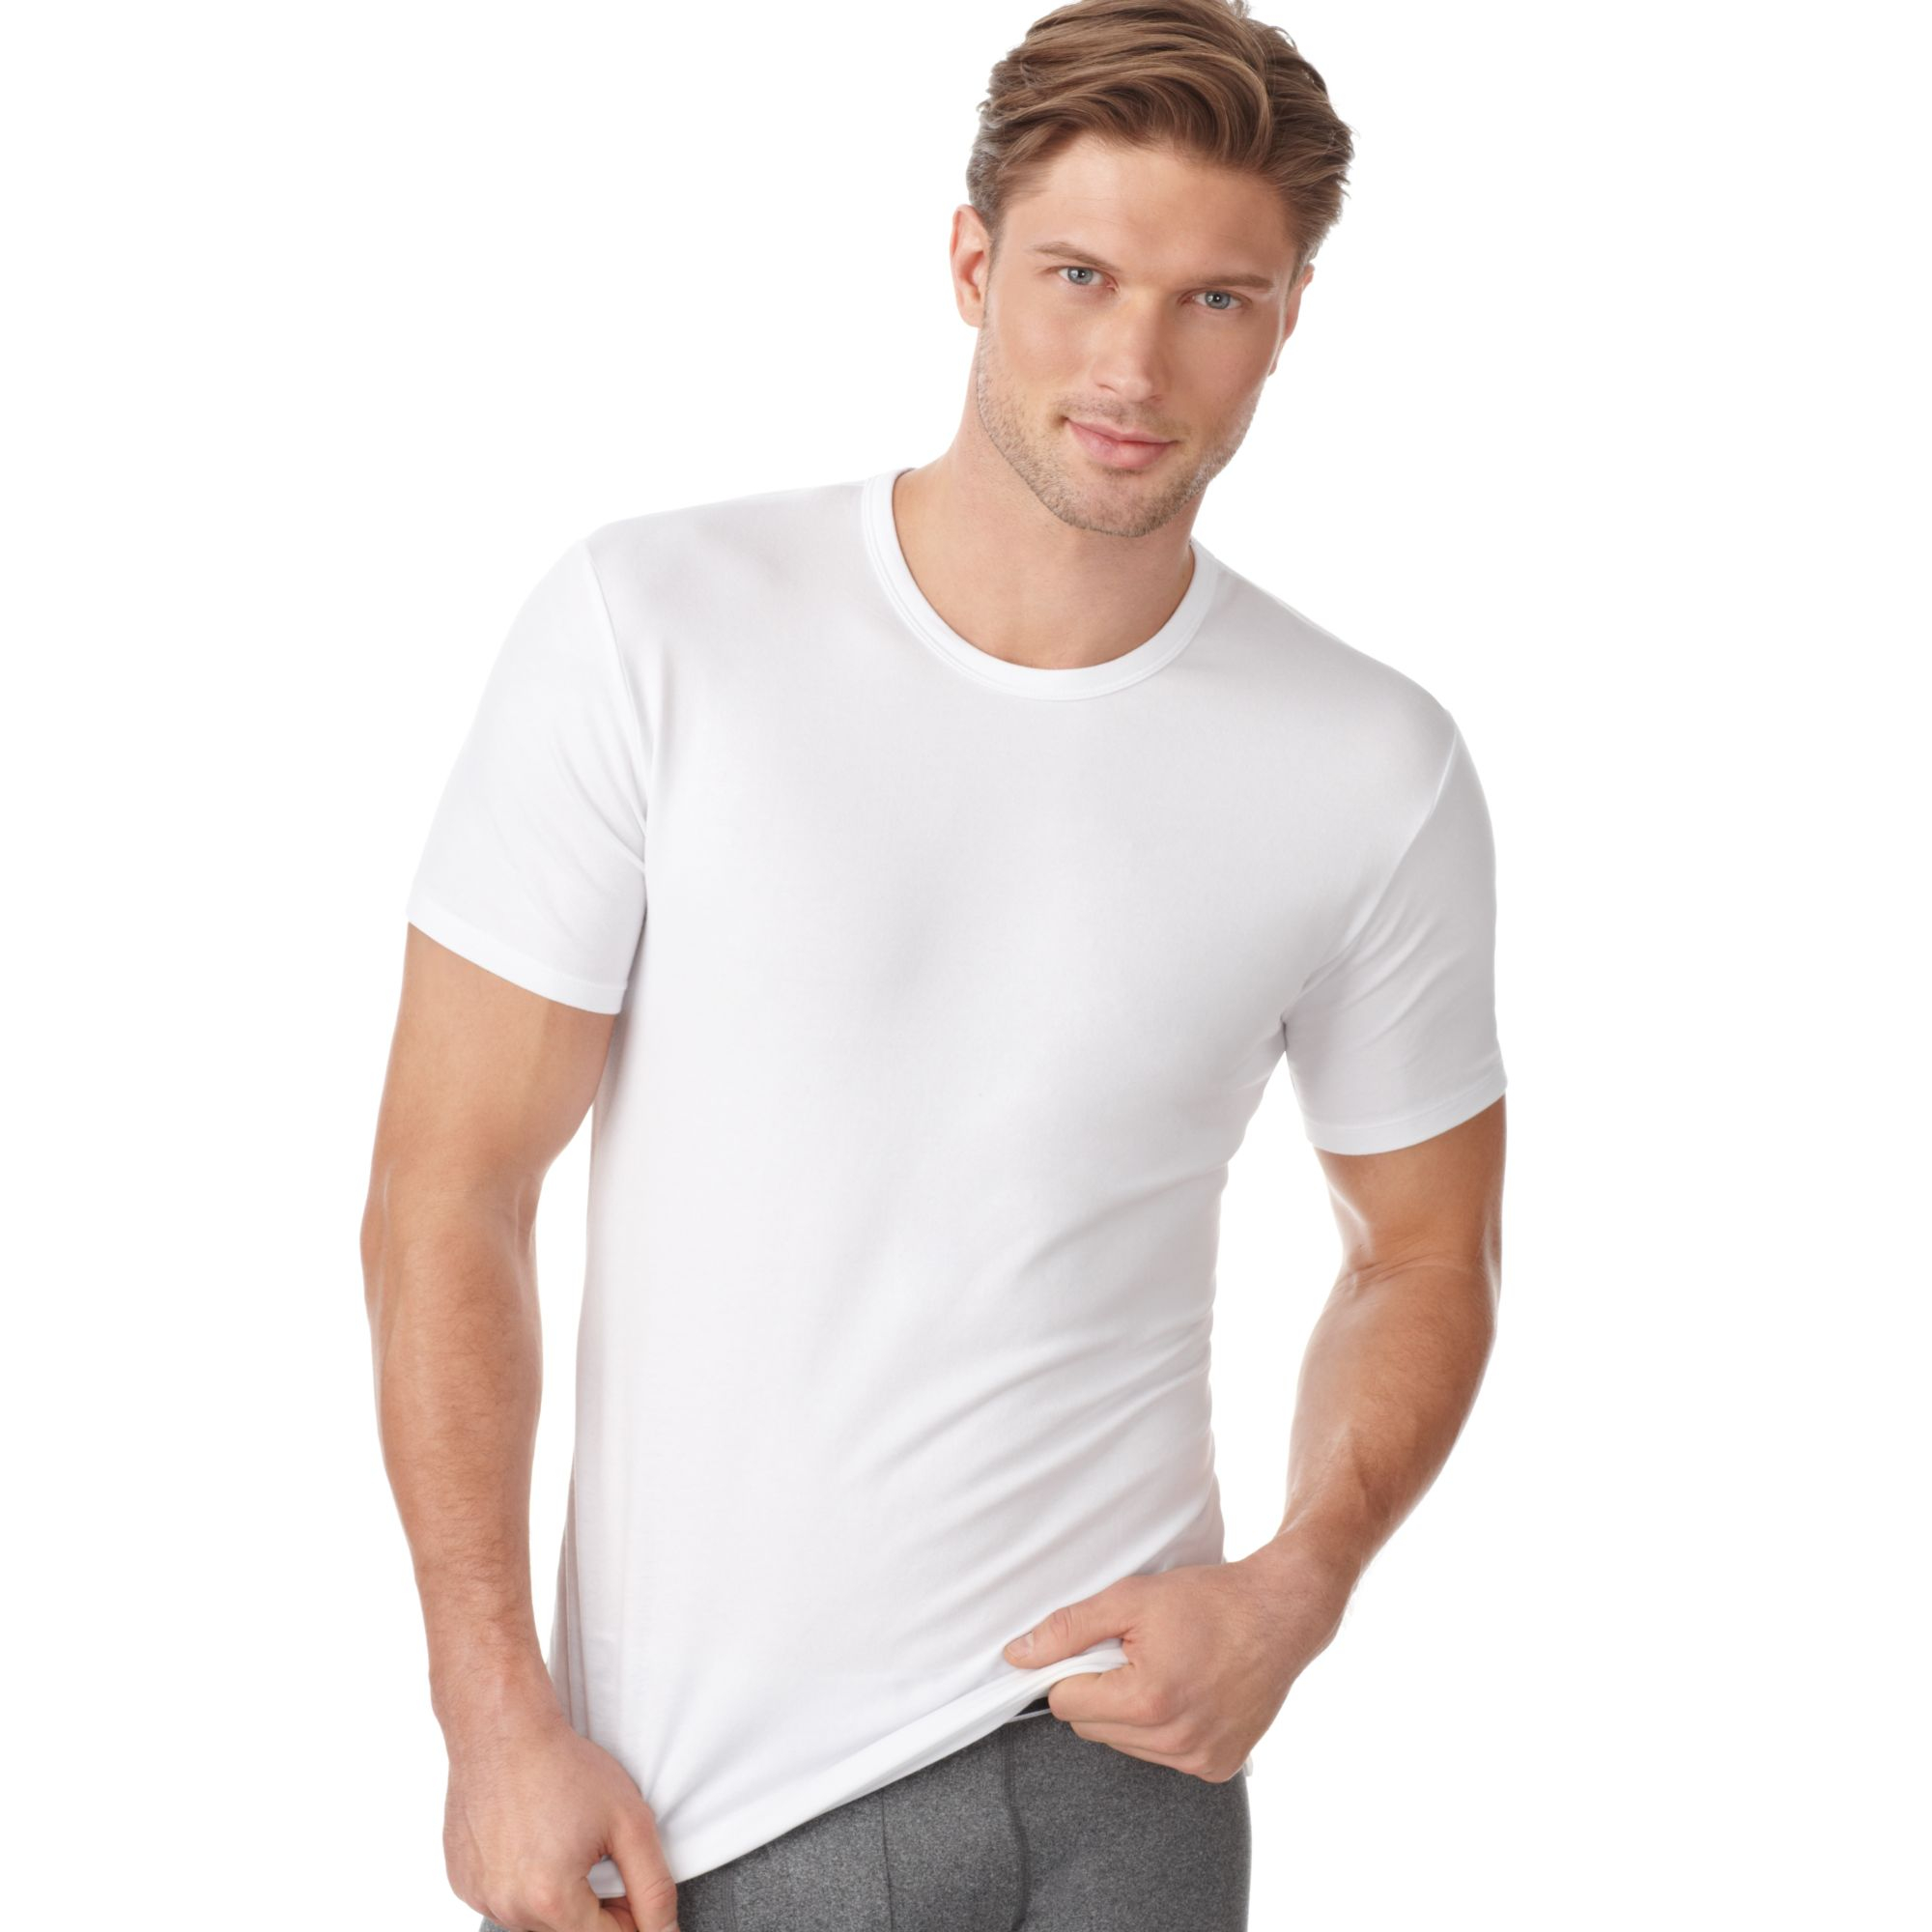 lyst calvin klein stretch t shirt 2 pack in white for men. Black Bedroom Furniture Sets. Home Design Ideas